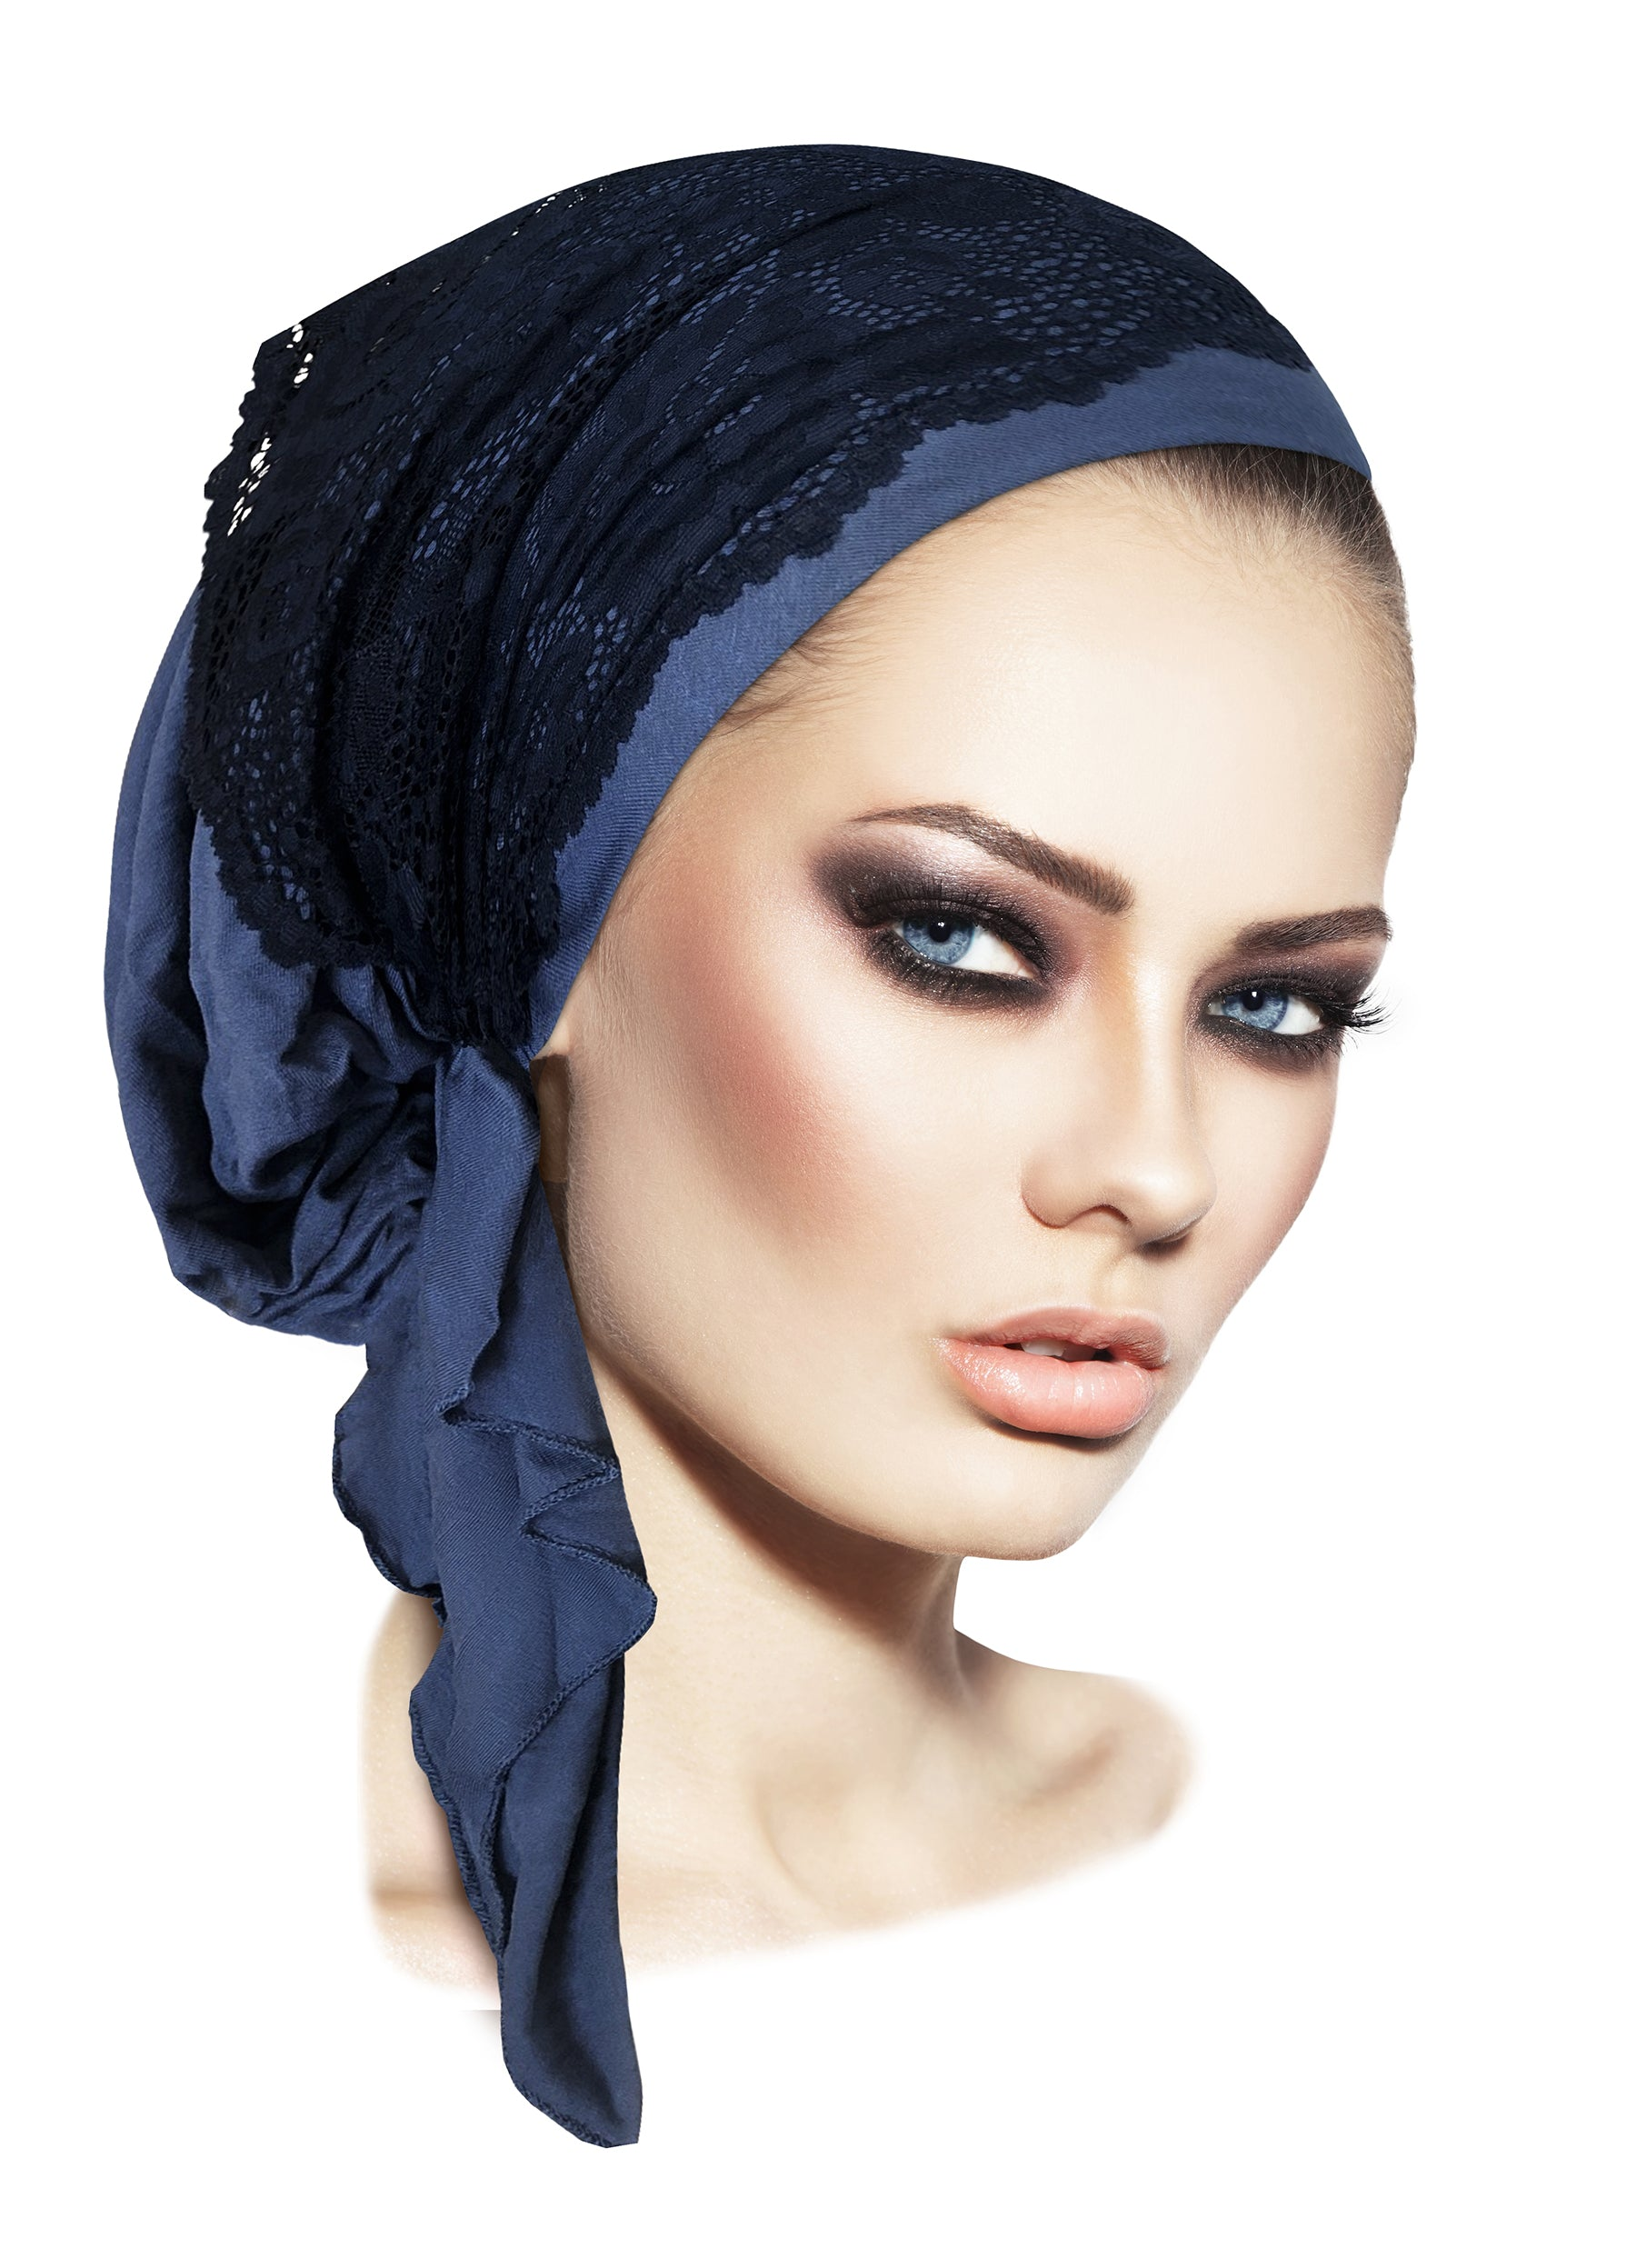 Navy blue pre-tied headscarf with wide floral lace